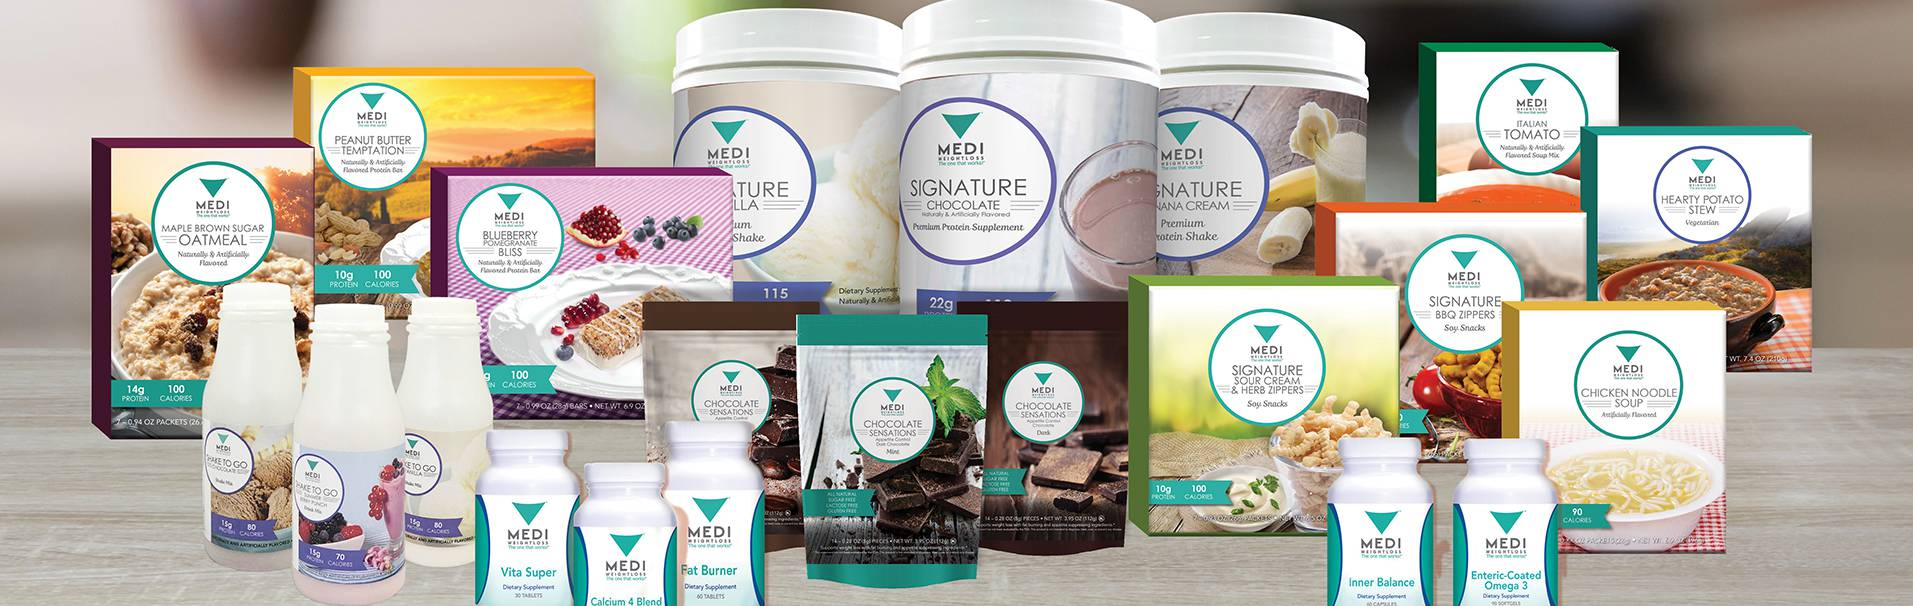 medi weight loss products   Lose Weight Tips